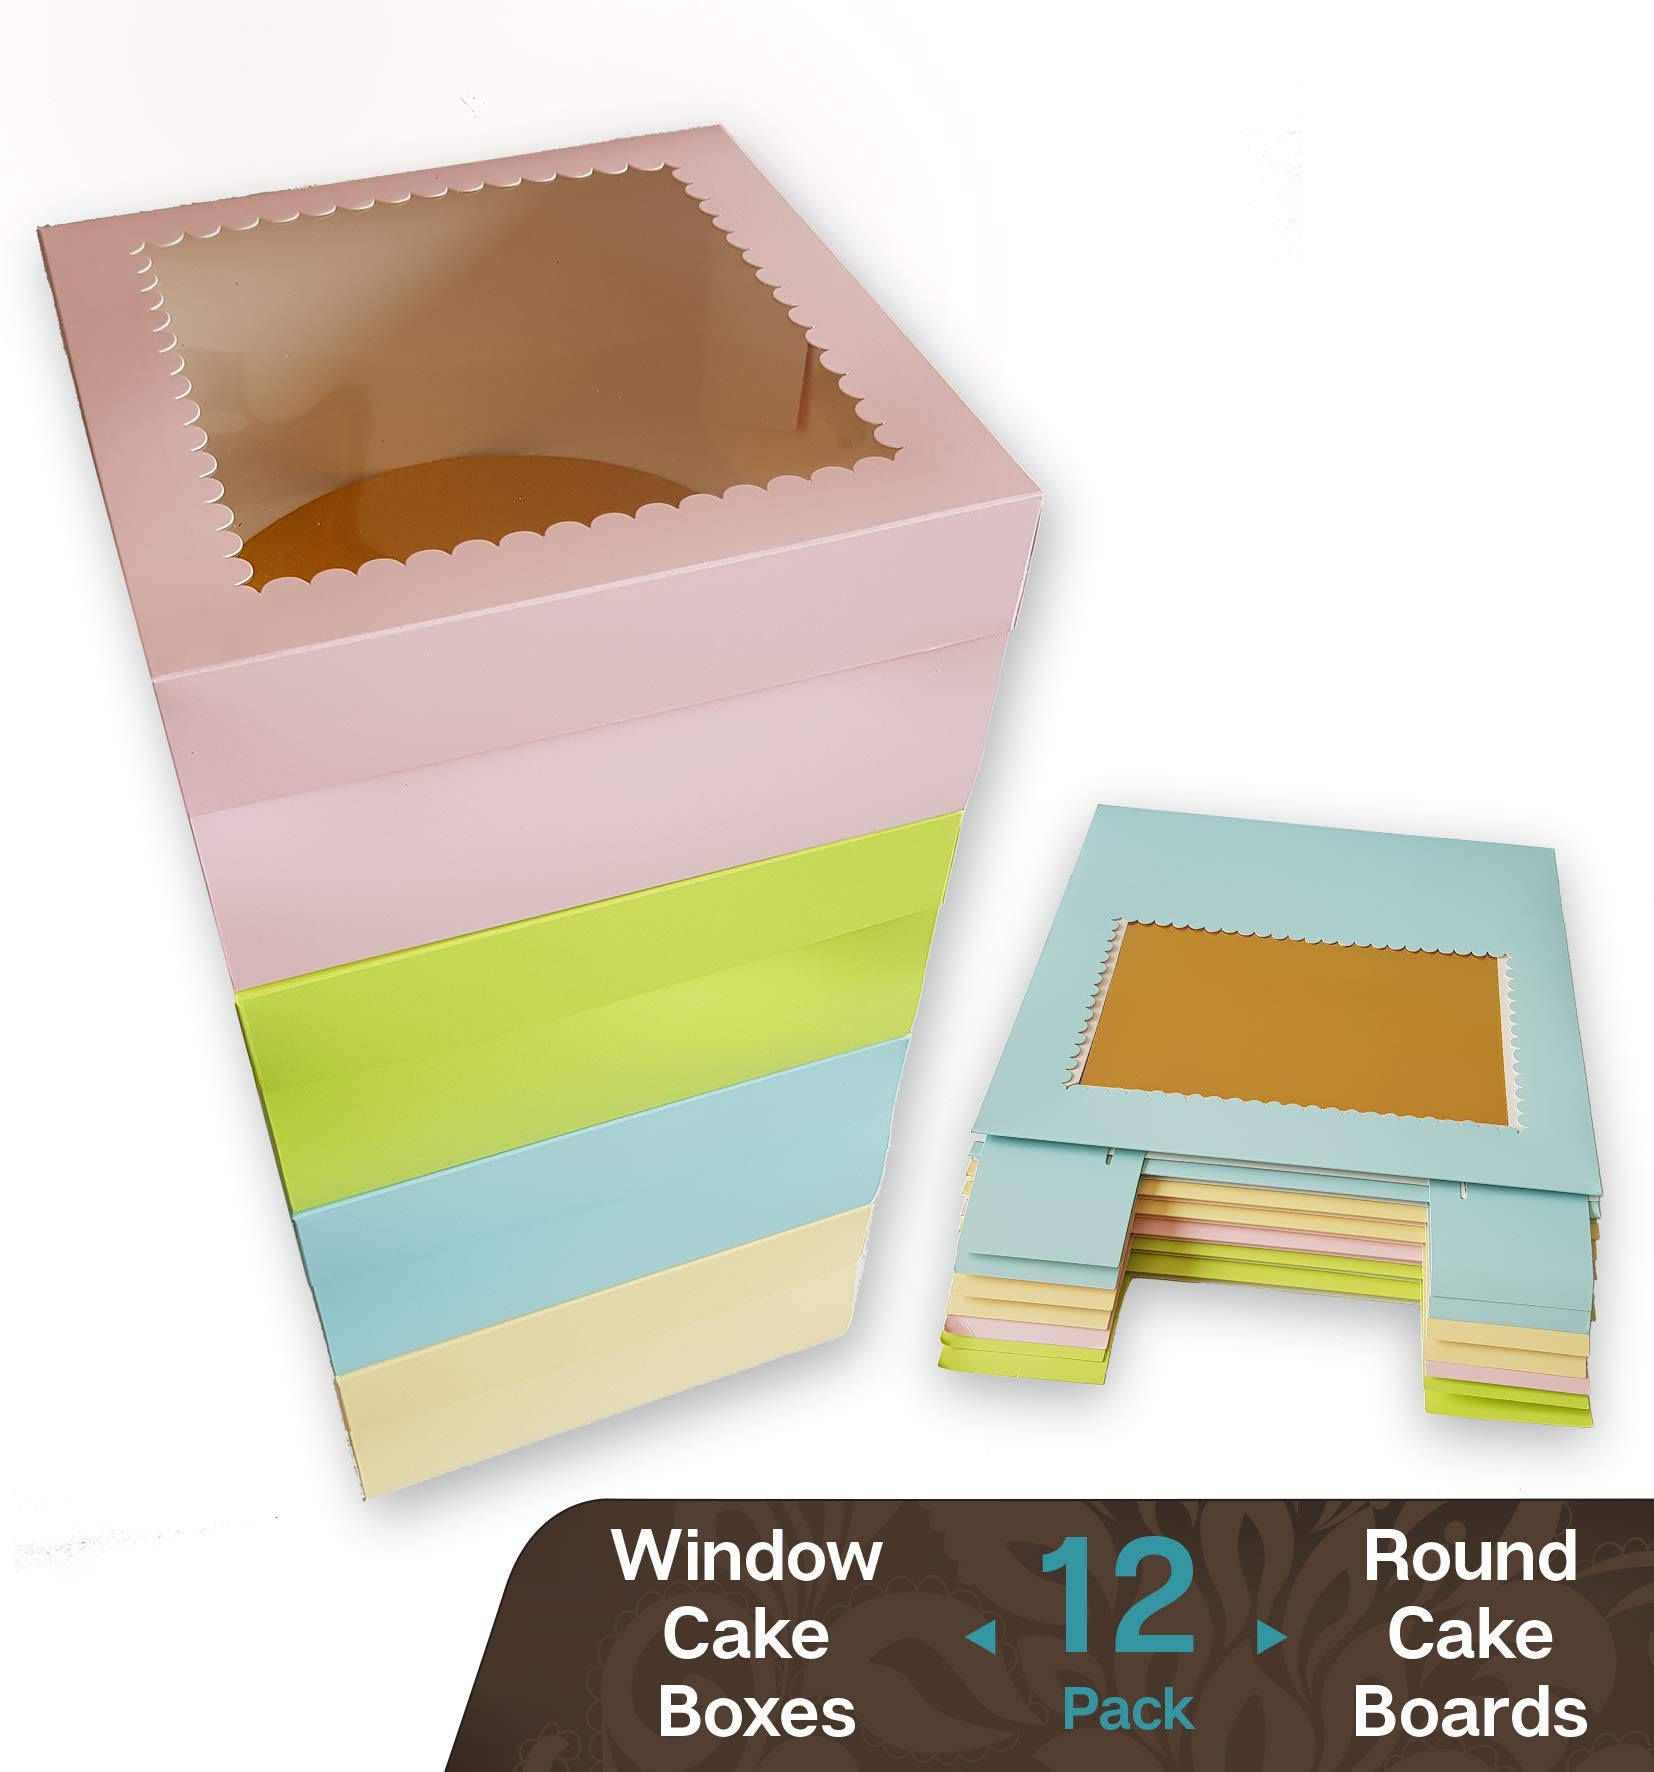 CooKeezz Couture - Cake Box - Colored Window Bakery Packaging Decorated Boxes Great for Donuts , Bakery , Pies - Assorted 12 Pack Decorated Boxes in 4 Pastel Colors , Included 12 Round Cake Boards (10x10x5)